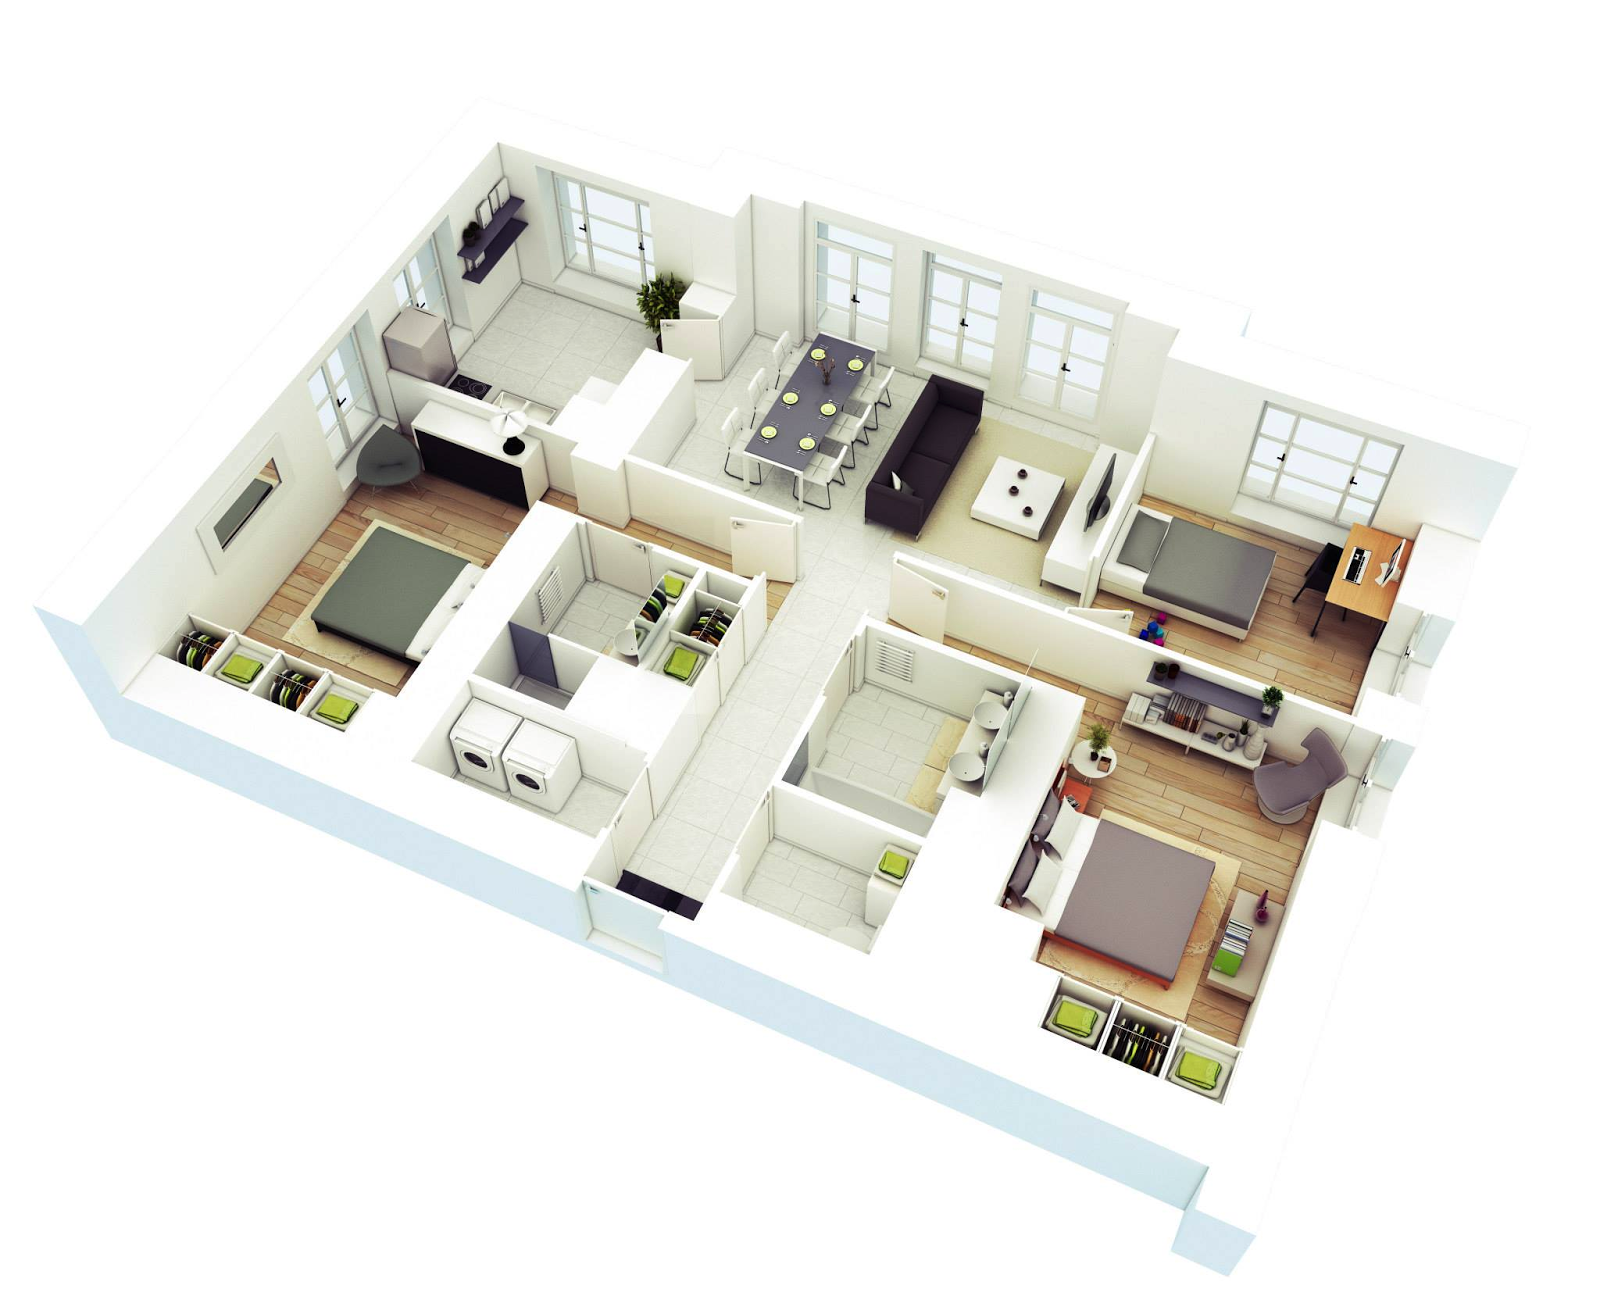 4 Three Bedroom Home Png 1600 1303 Three Bedroom House Plan House Floor Plans Bedroom House Plans